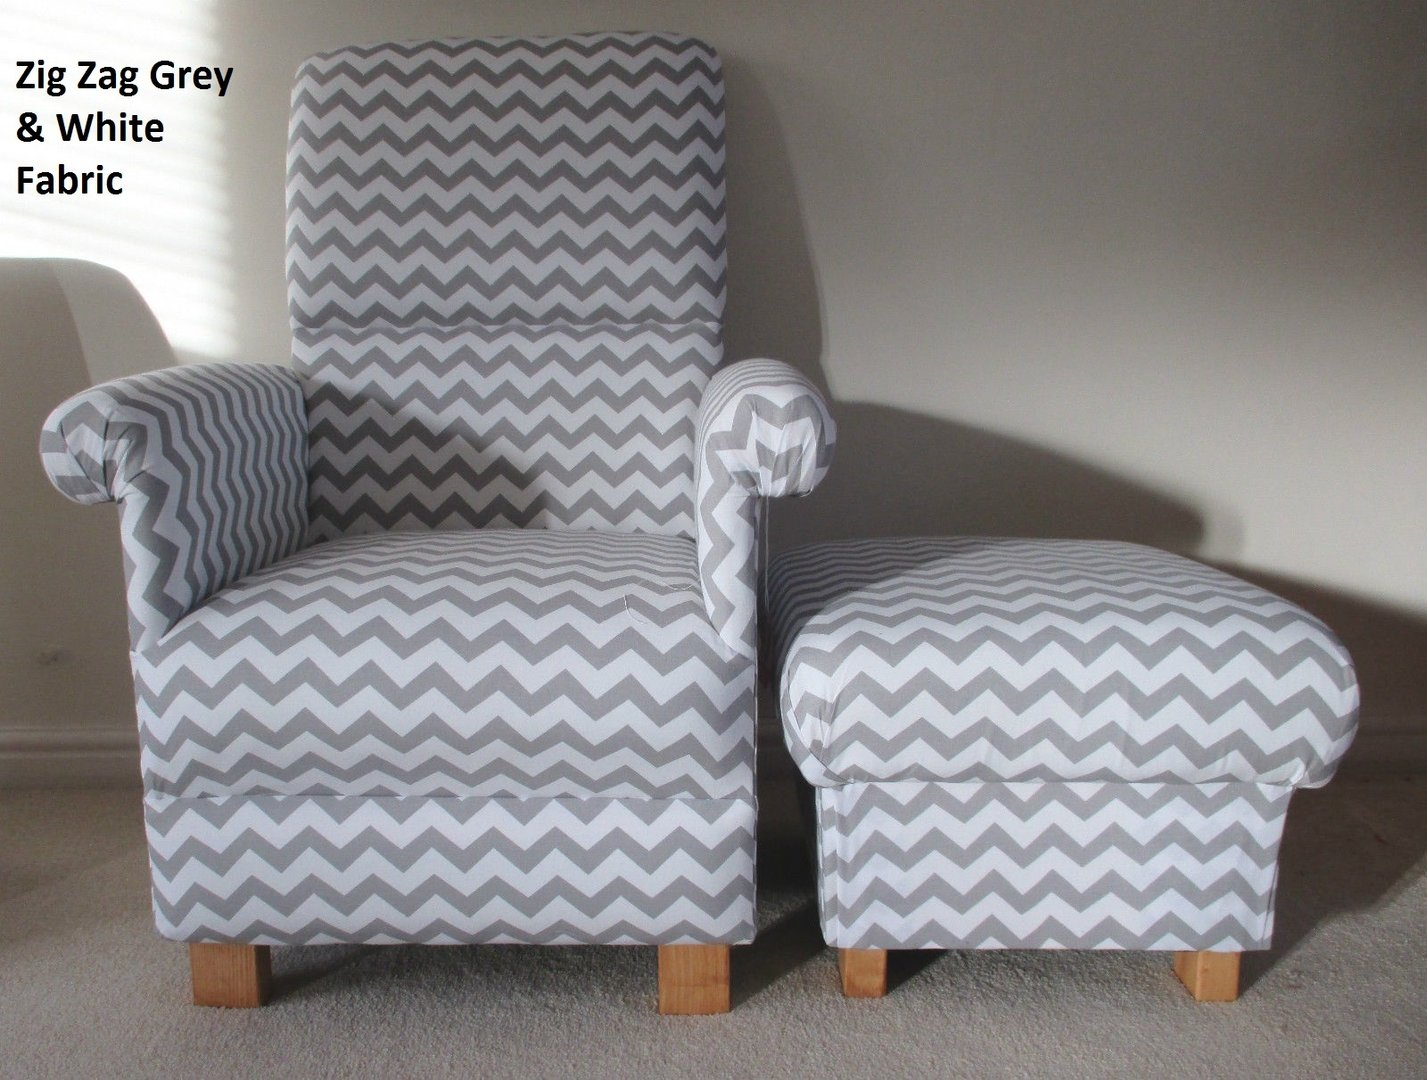 Zig Zag Grey  White Fabric Adult Chair  Footstool